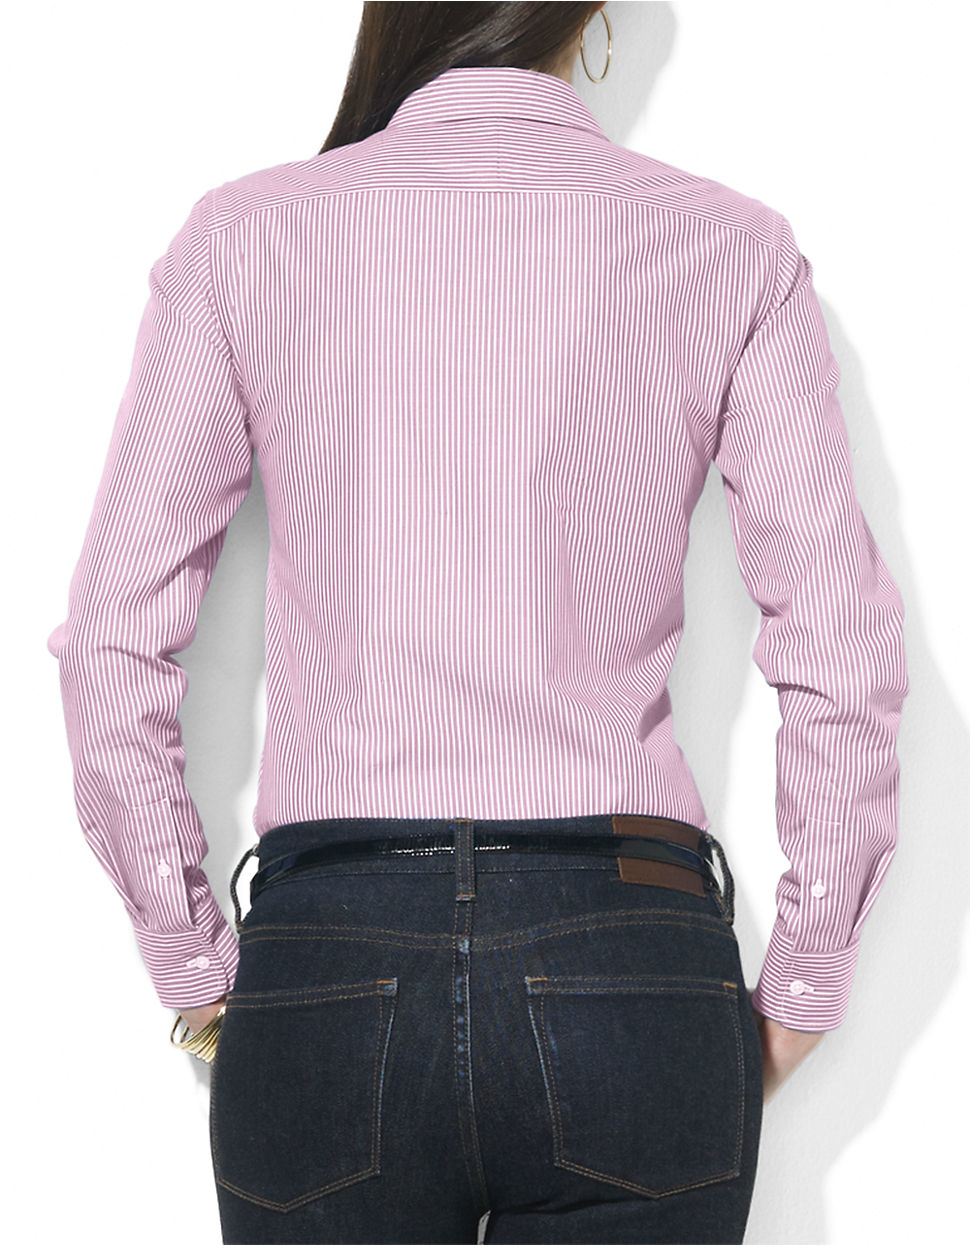 Cool  Ralph Lauren View All Shirts Formal View All Ralph Lauren Shirts